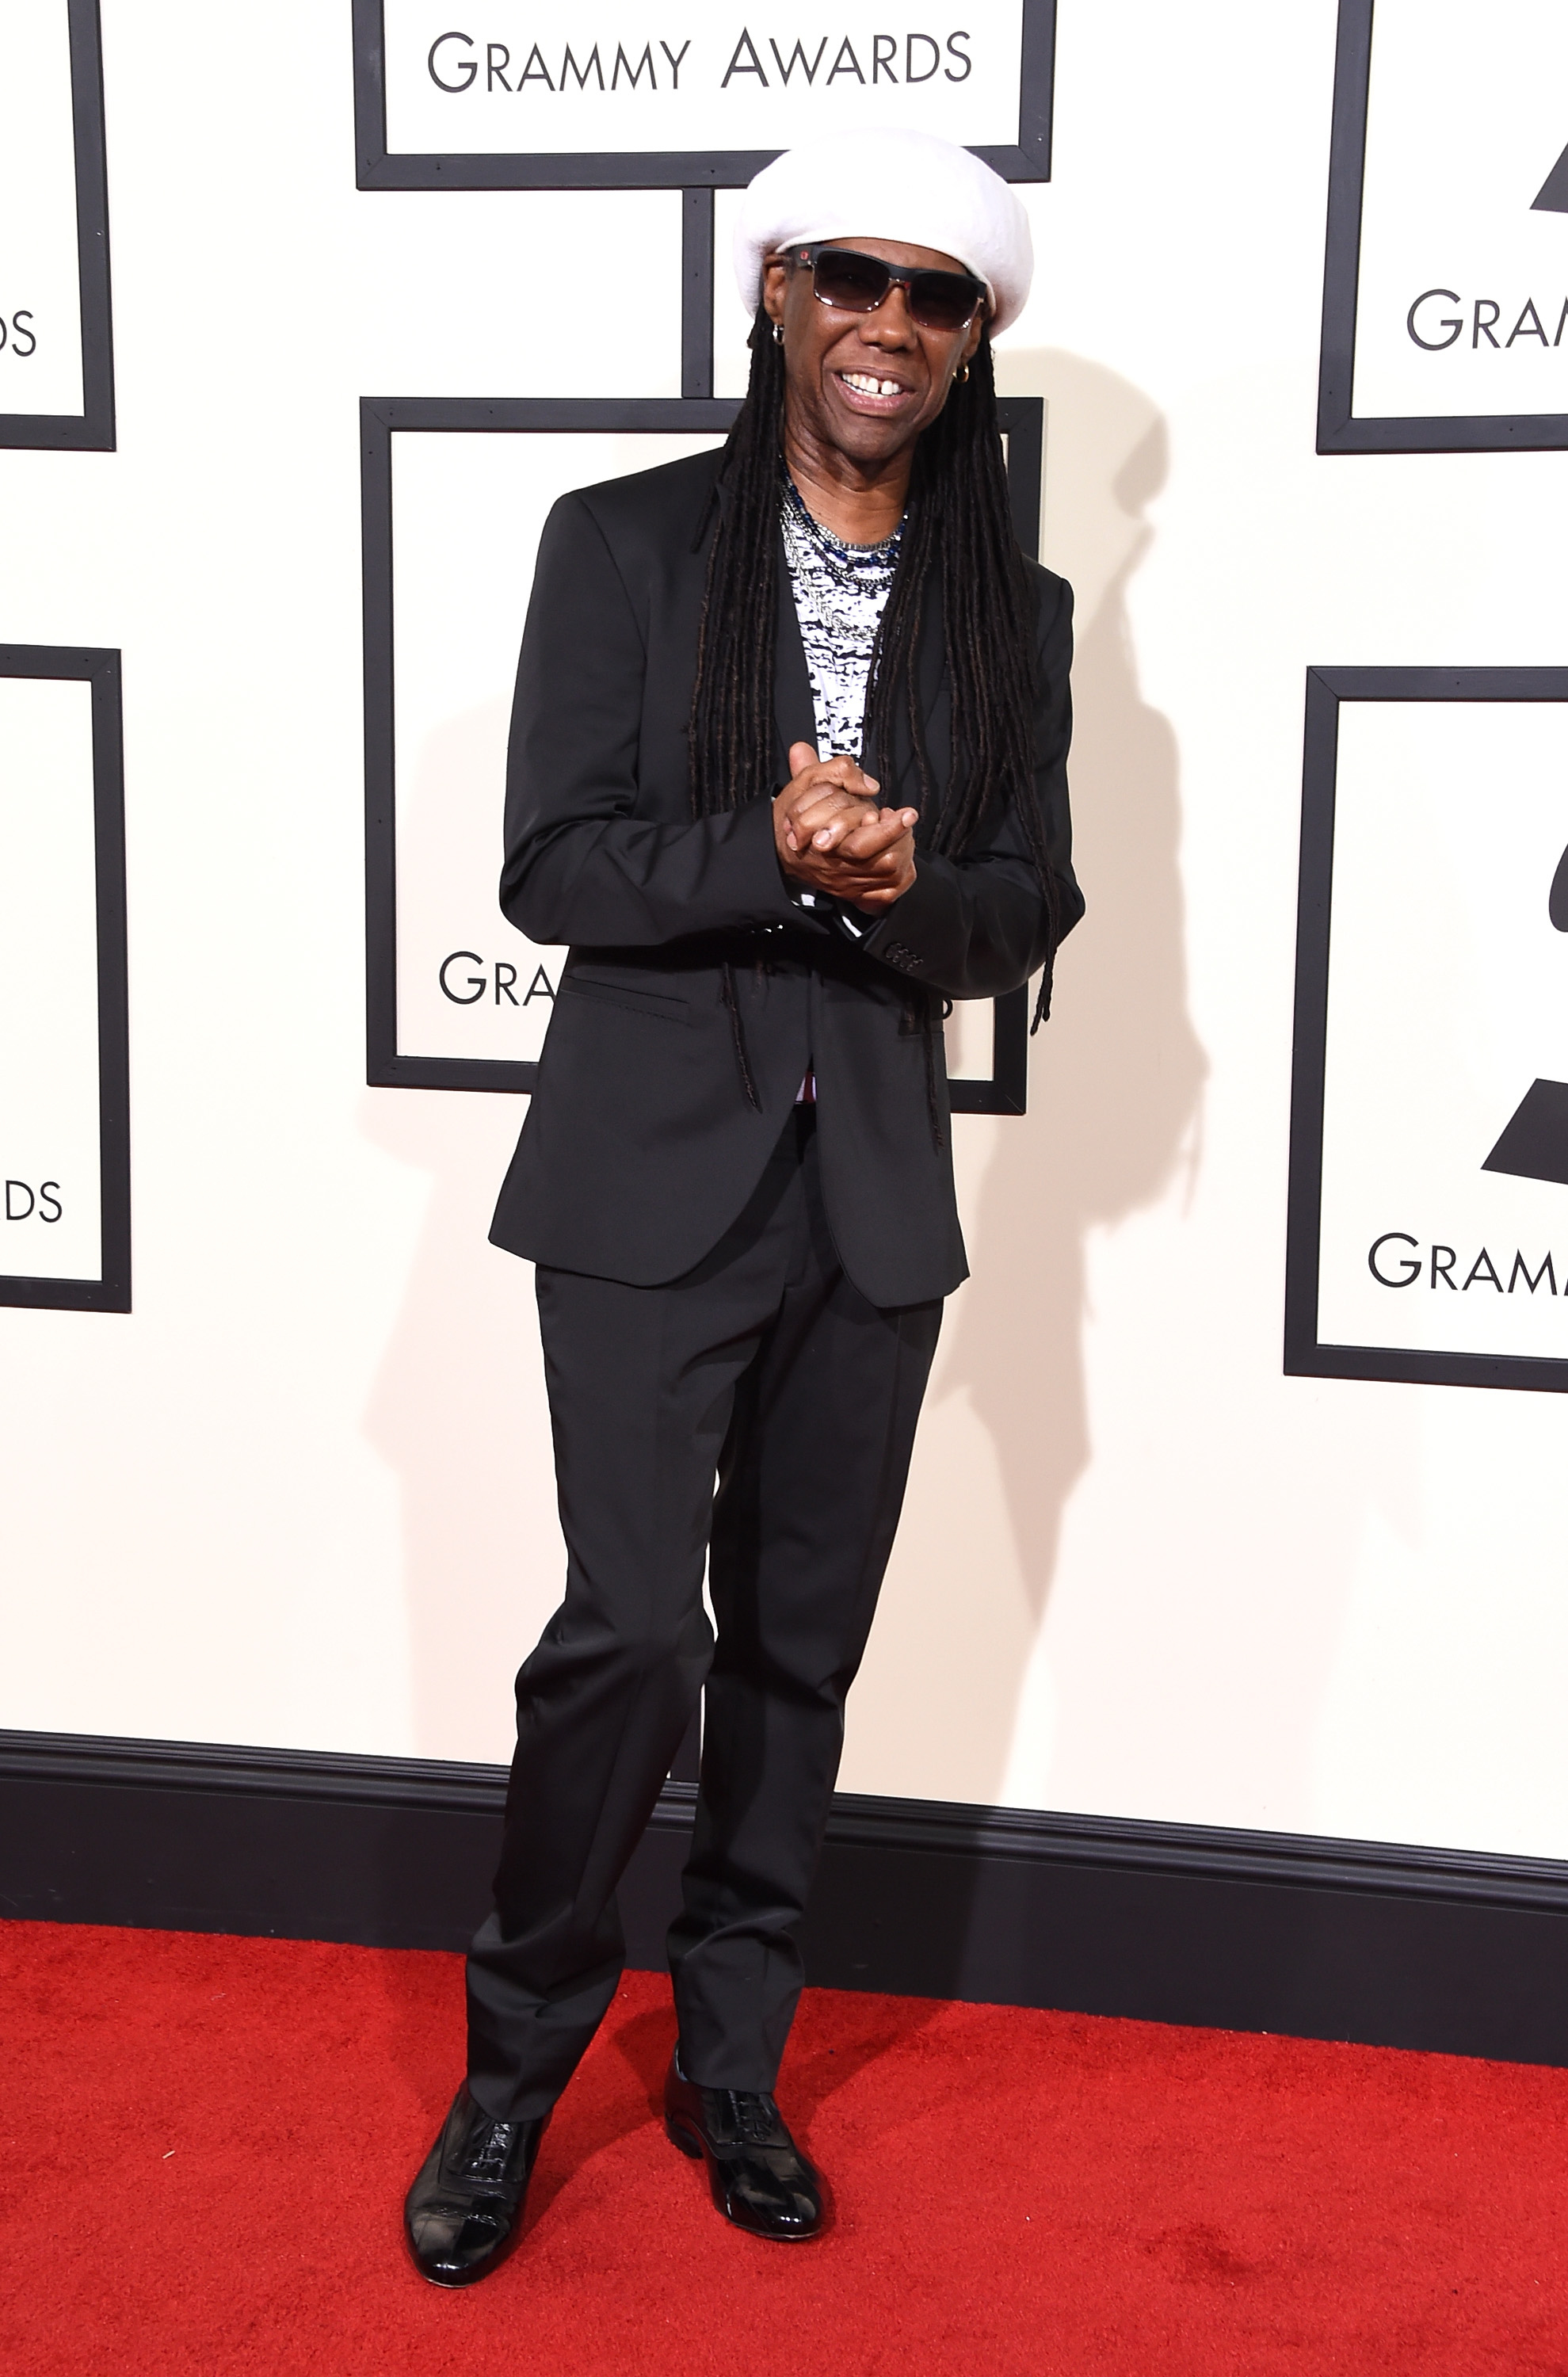 Nile Rodgers attends the 58th GRAMMY Awards at Staples Center on Feb. 15, 2016 in Los Angeles.